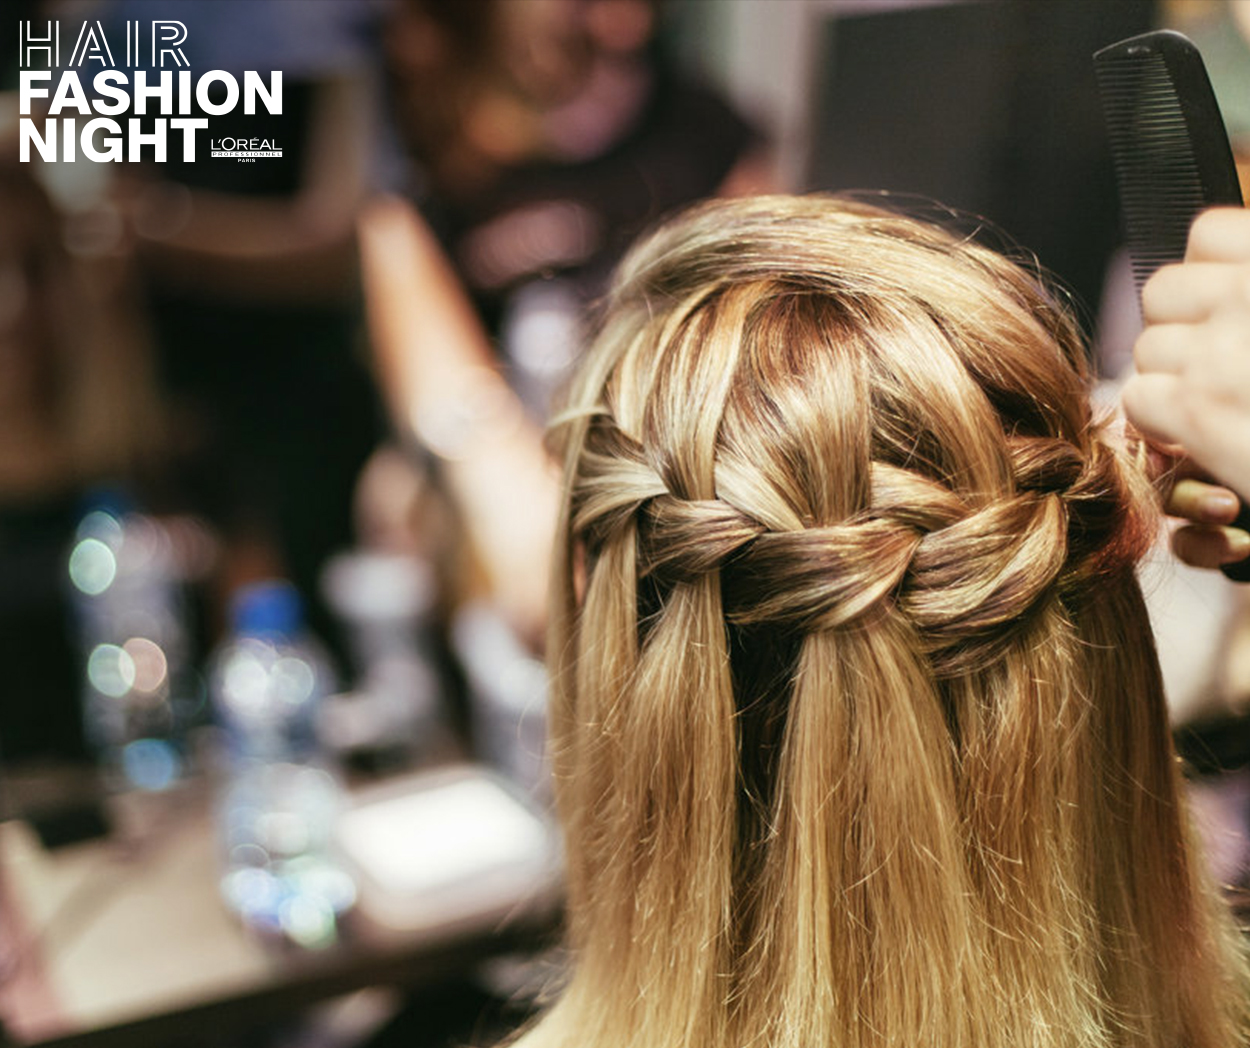 HAIR FASHION NIGHT Kleve Haargenau